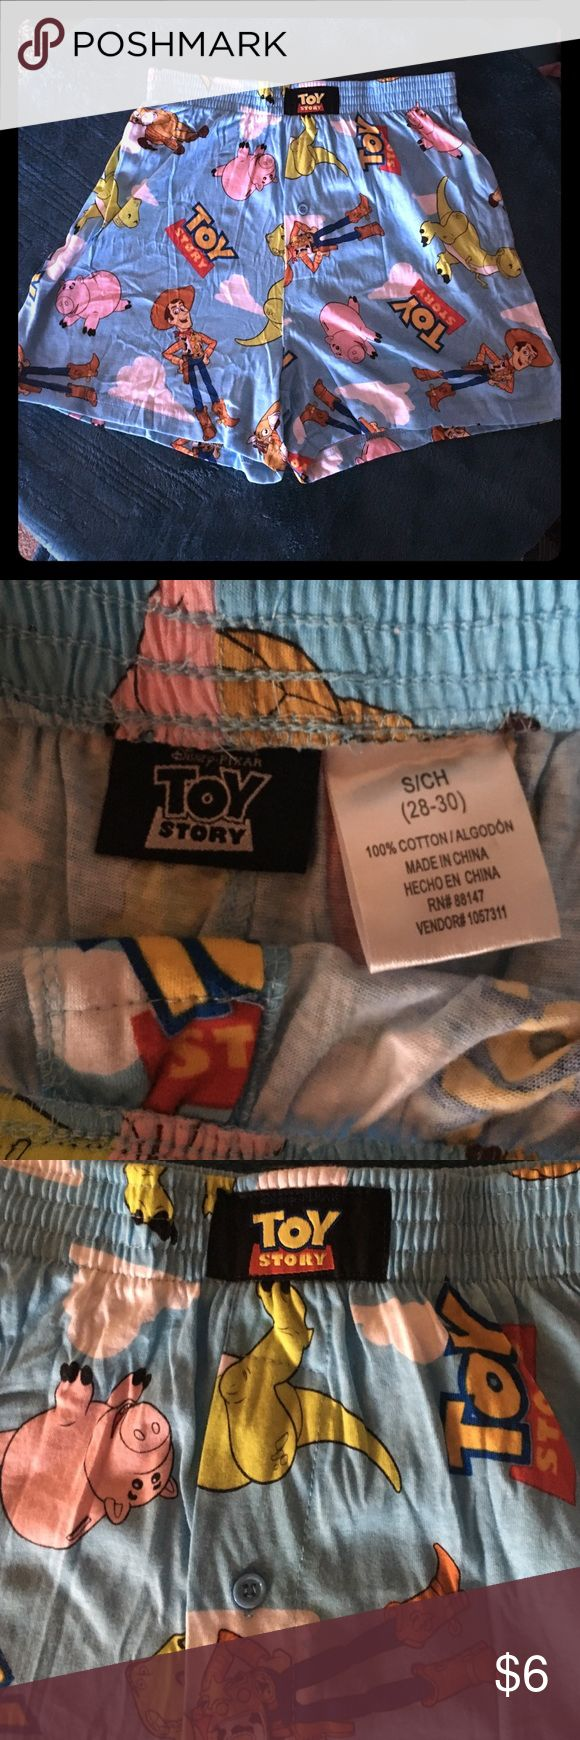 NWOT Toy Story Men's Boxers Size small NWOT,never worn or washed,bran new Christmas gift that would never fit my hubs.100%cotton. toy story Underwear & Socks Boxers